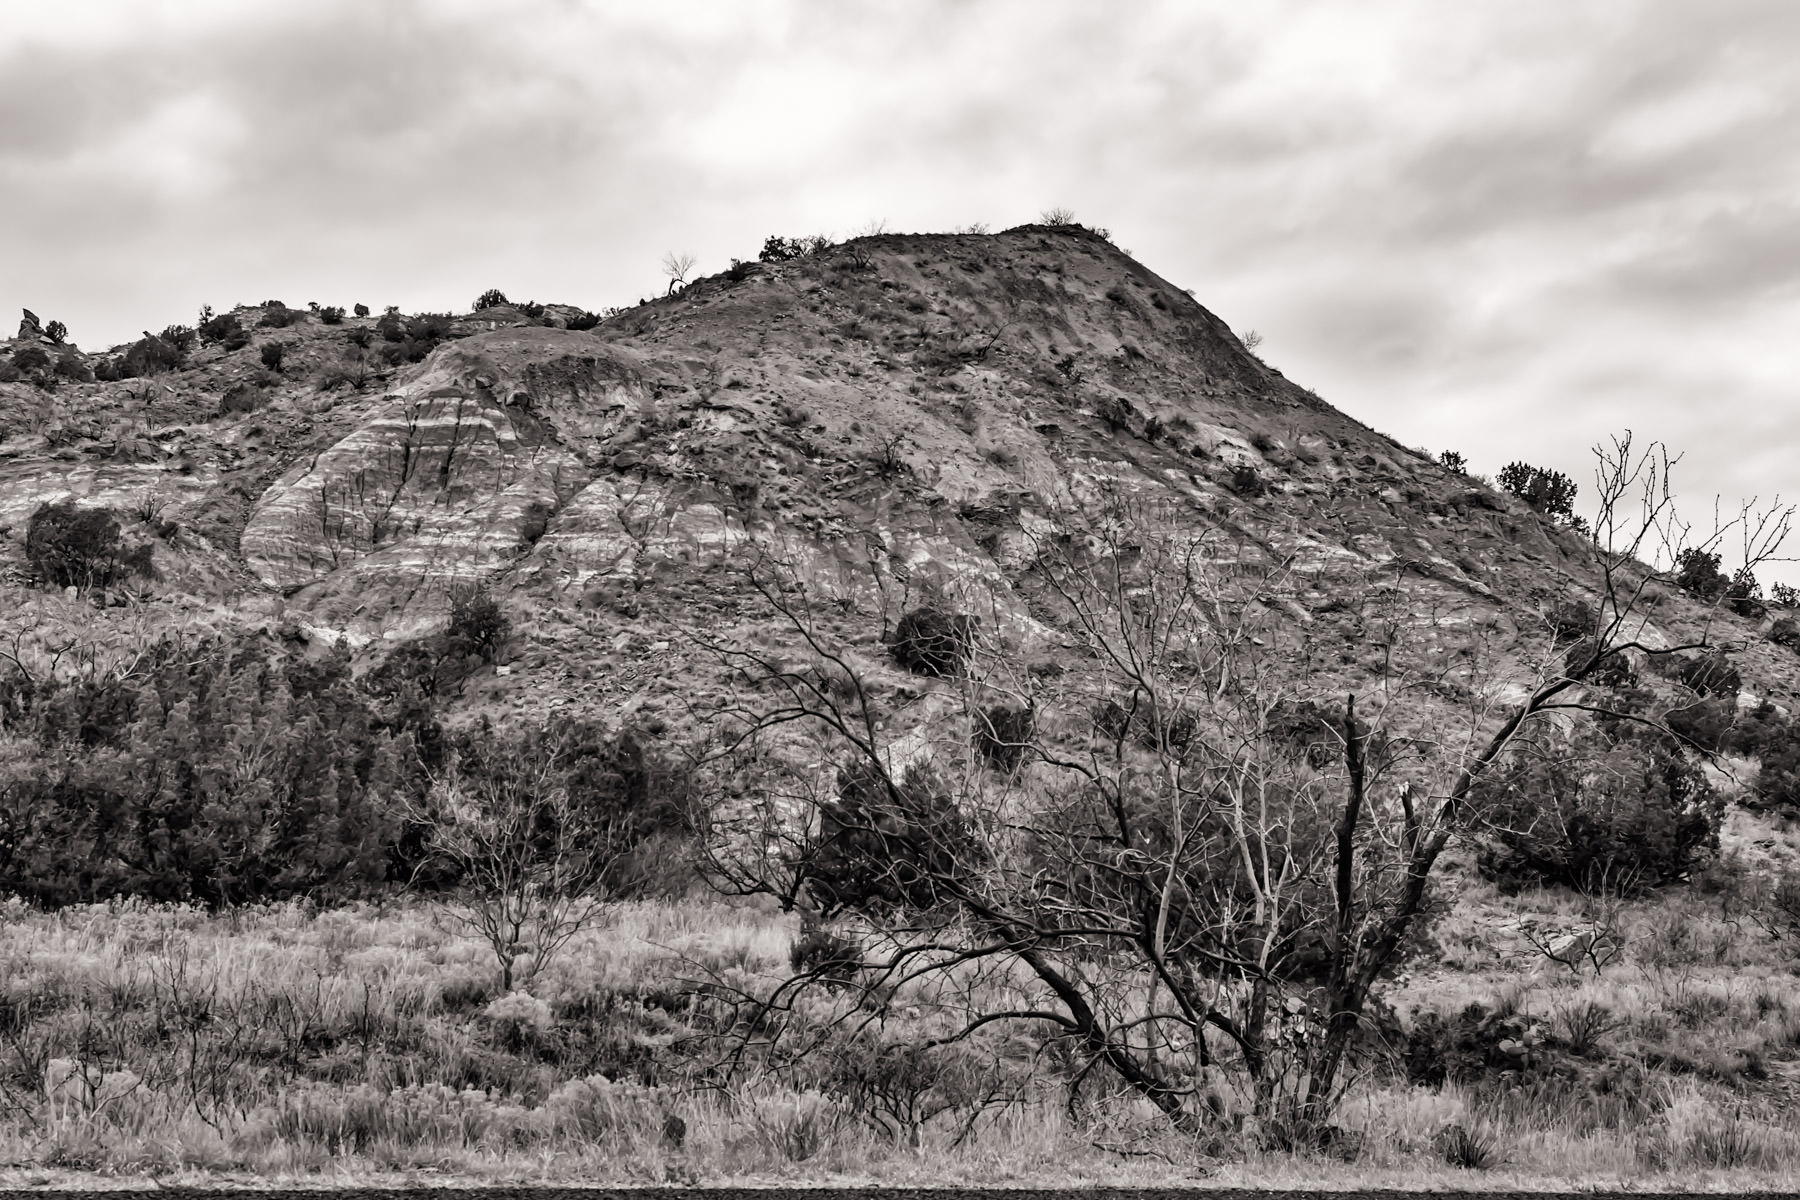 Storm clouds move in over Palo Duro Canyon, Texas.